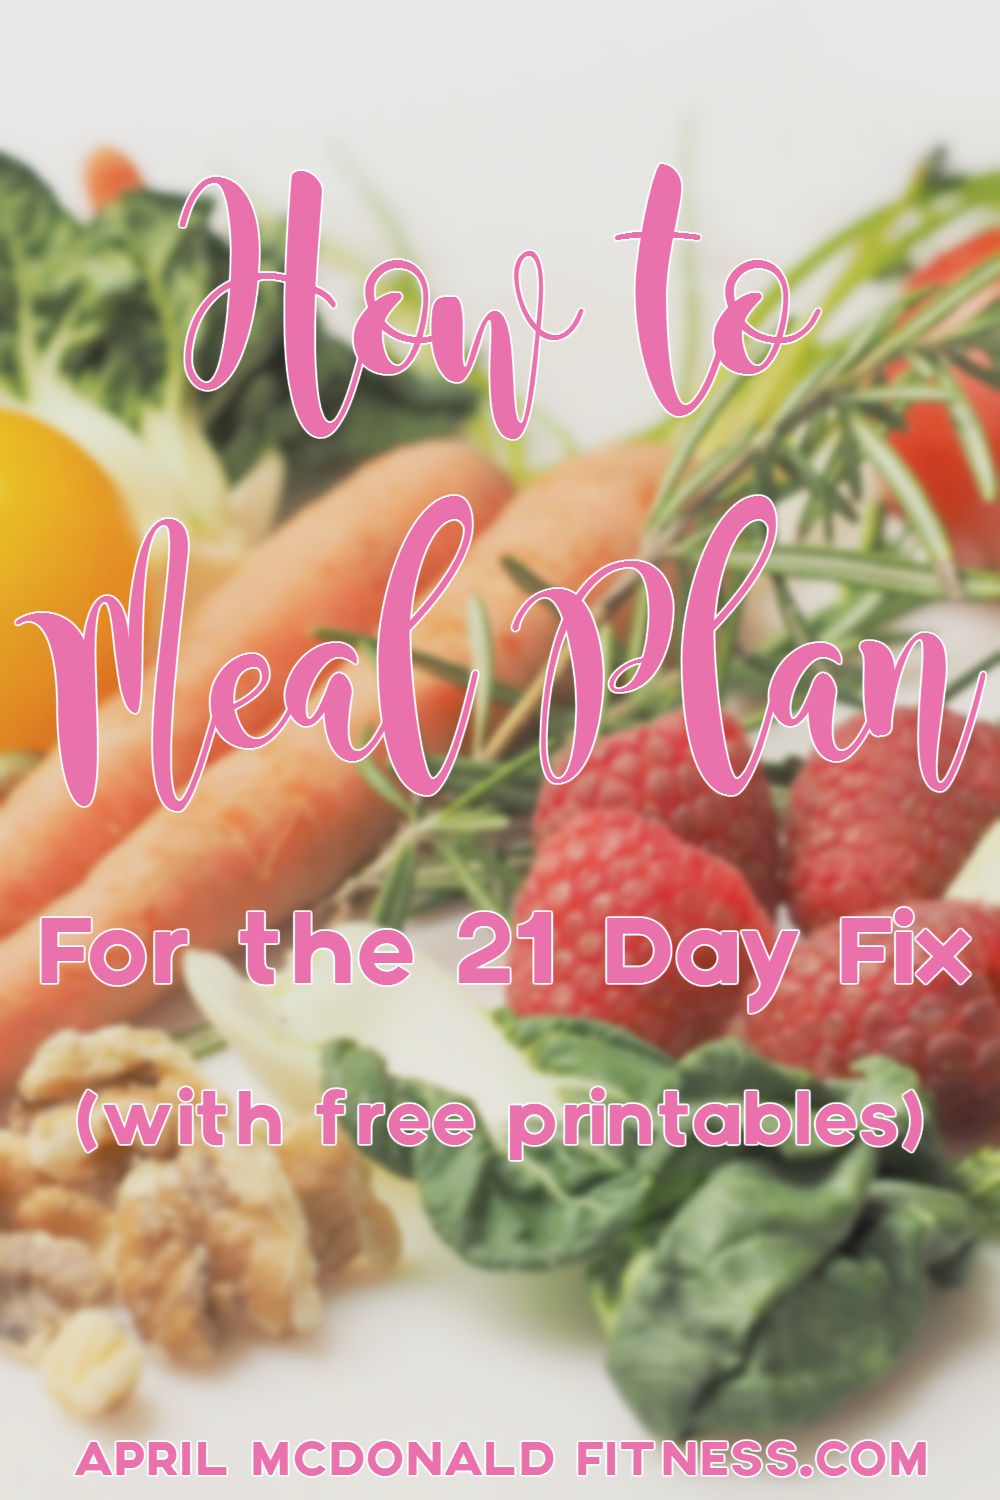 Tips on how to meal plan for the 21 day fix